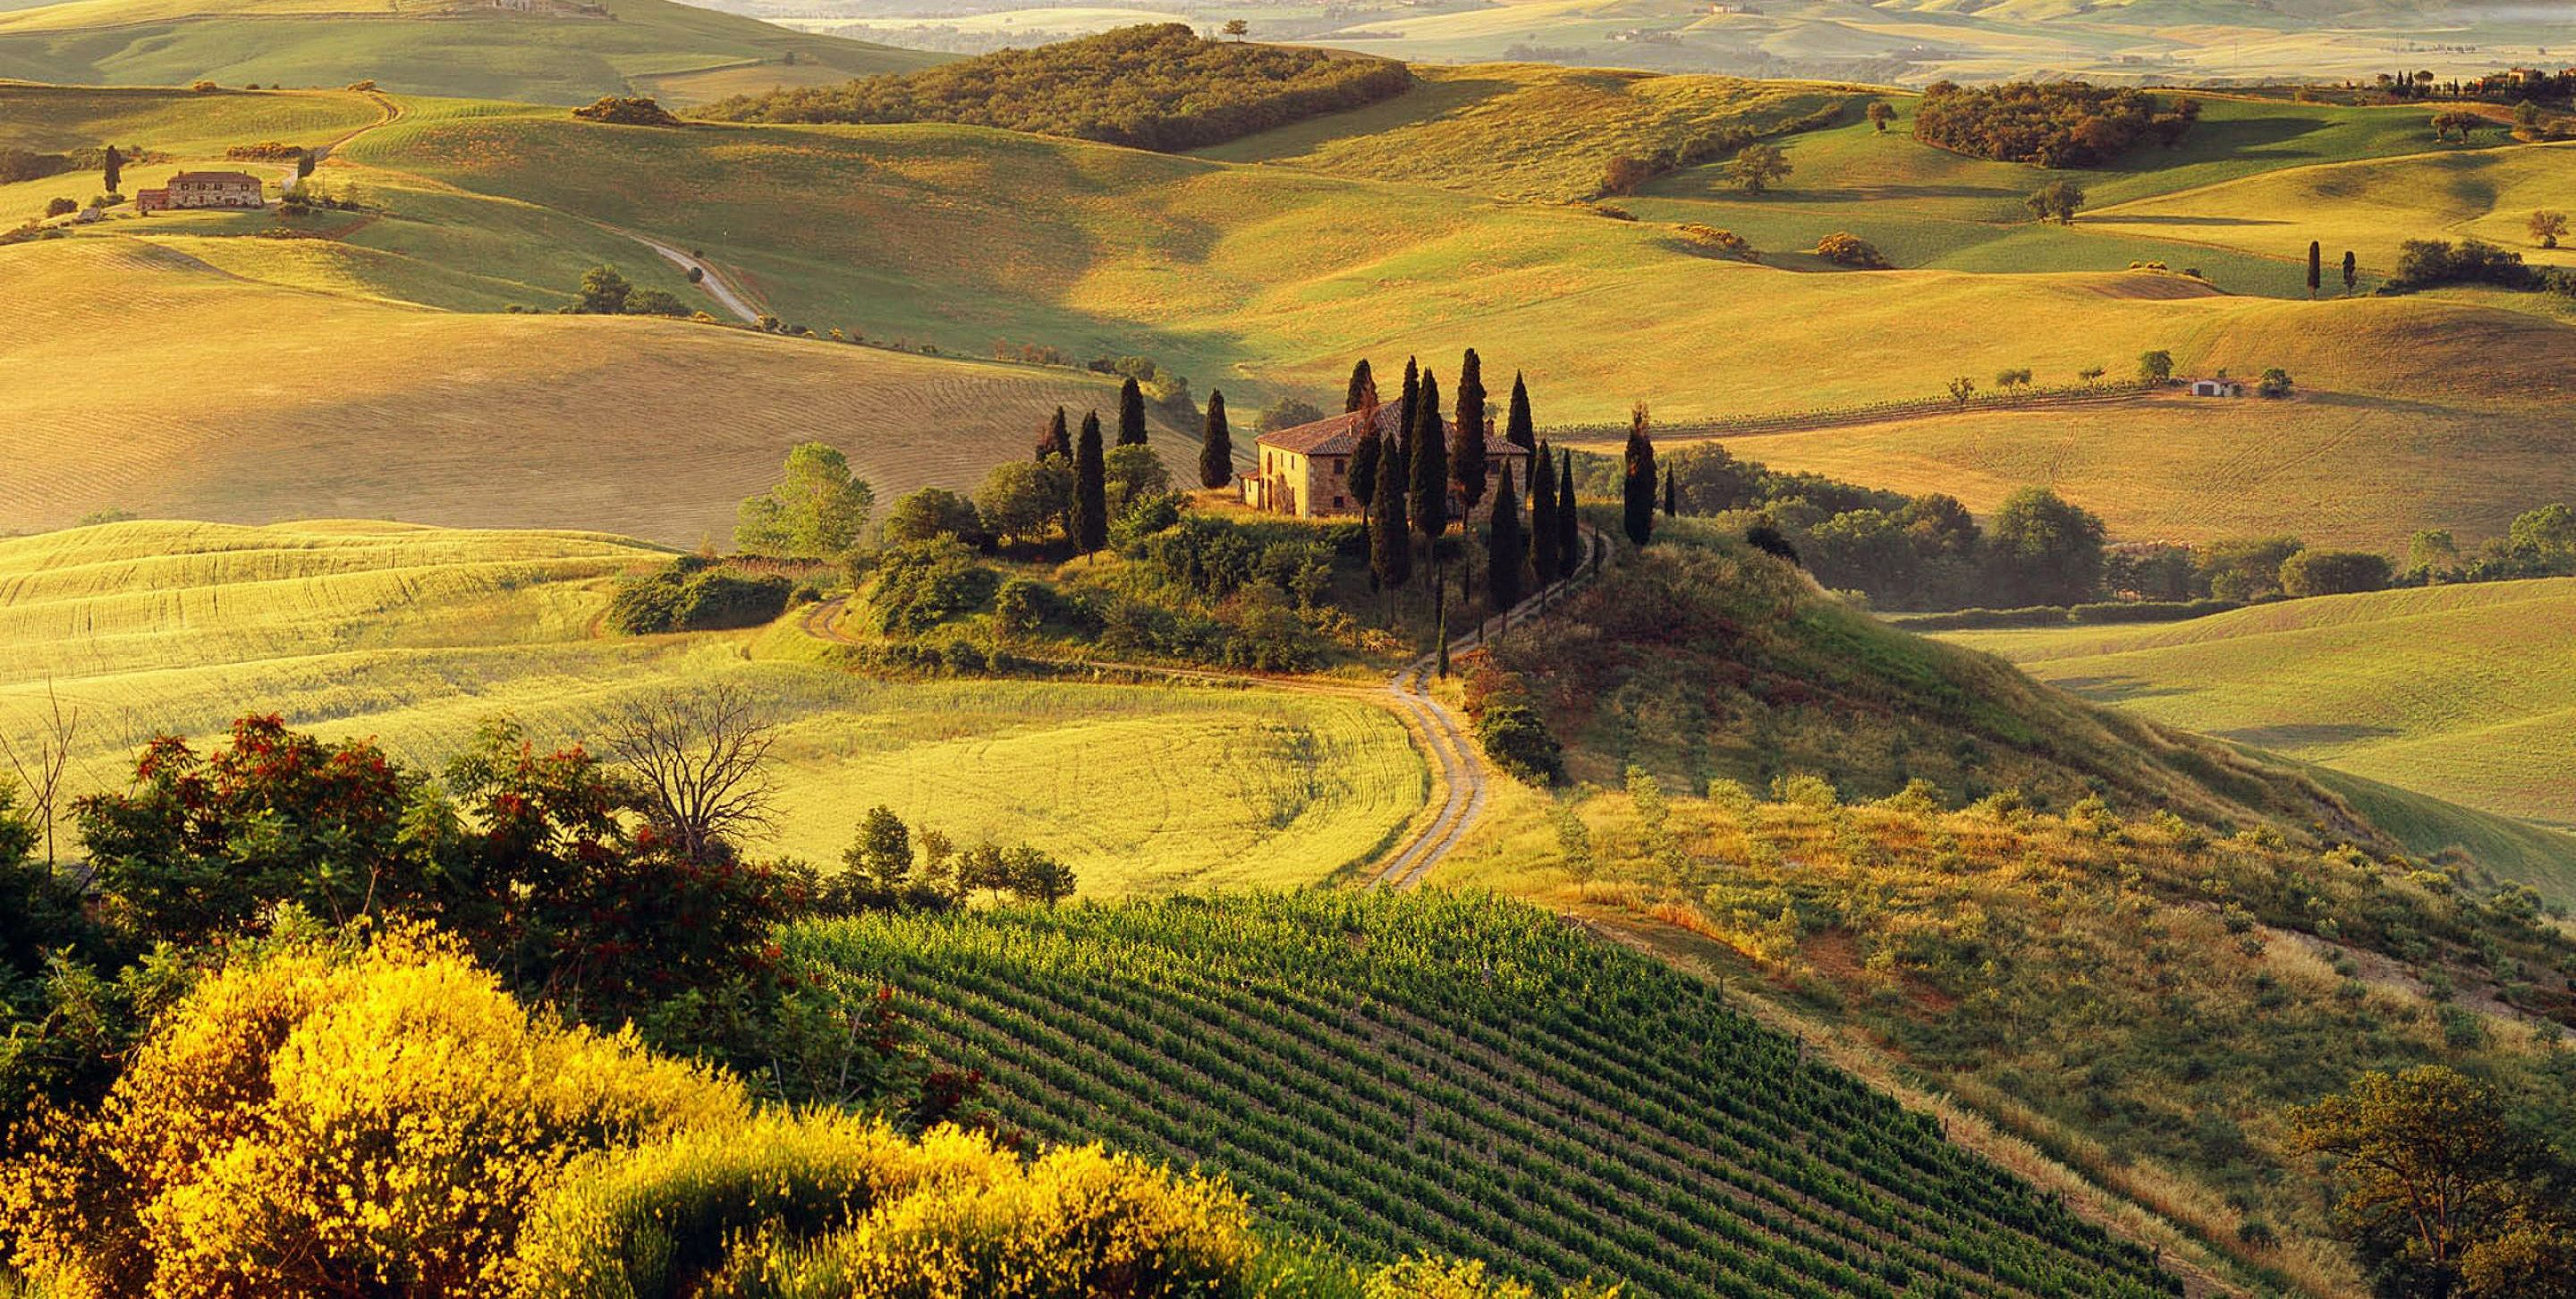 With Its Golden Landscapes Pleasant Weather Welcoming People Flavorful Dishes And Amazing Cities Tuscany Is Italy Landscape Summer Landscape Tuscany Italy